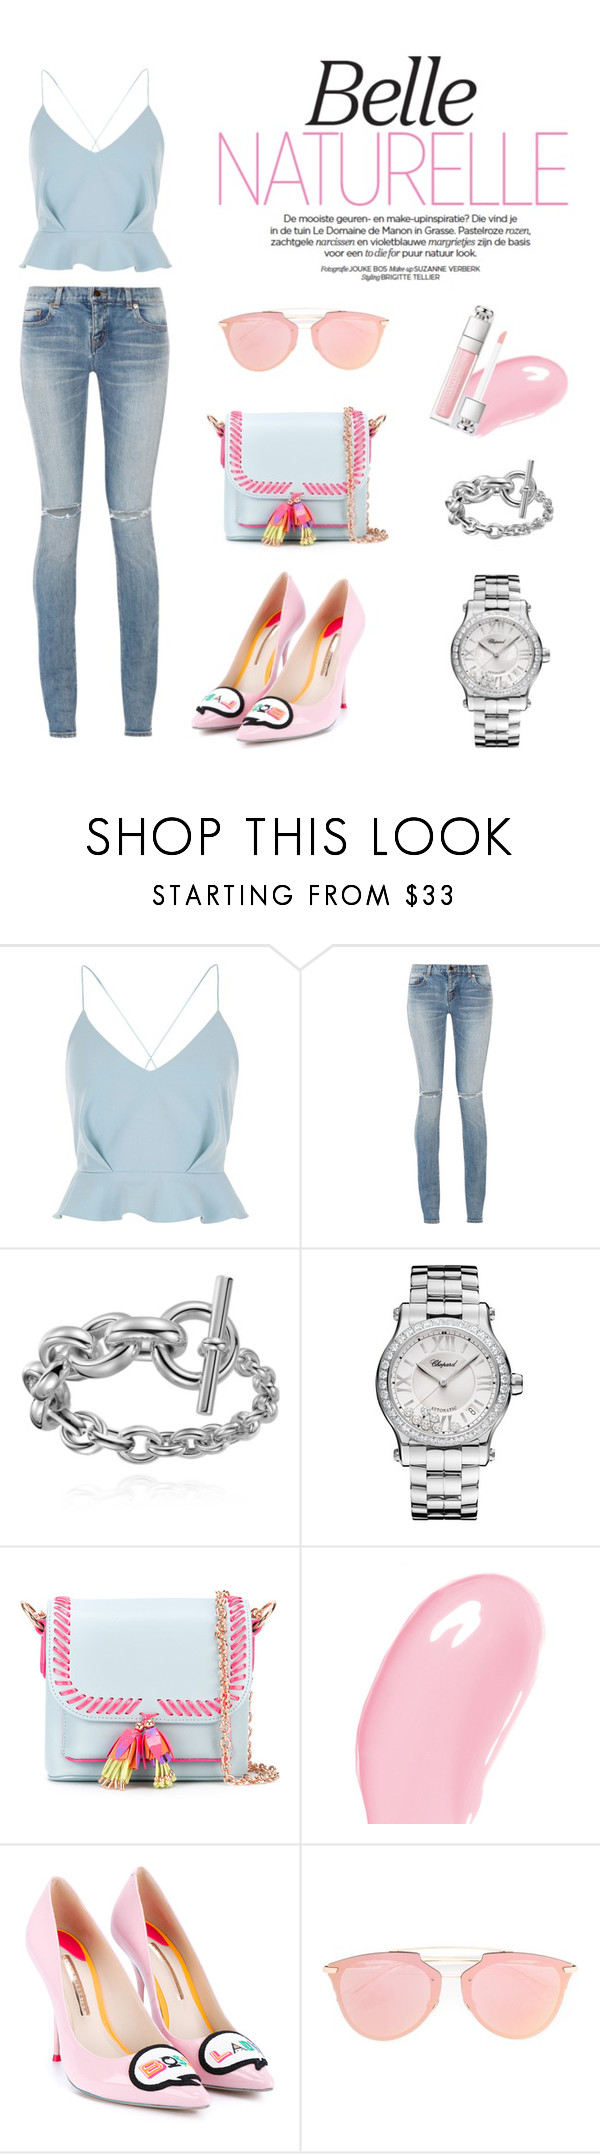 """""""My day time outfit"""" by hongy-nguyen on Polyvore featuring River Island, Yves Saint Laurent, Chopard, Sophia Webster, Christian Dior, pastel, sophiawebster and daytimeoutfit"""